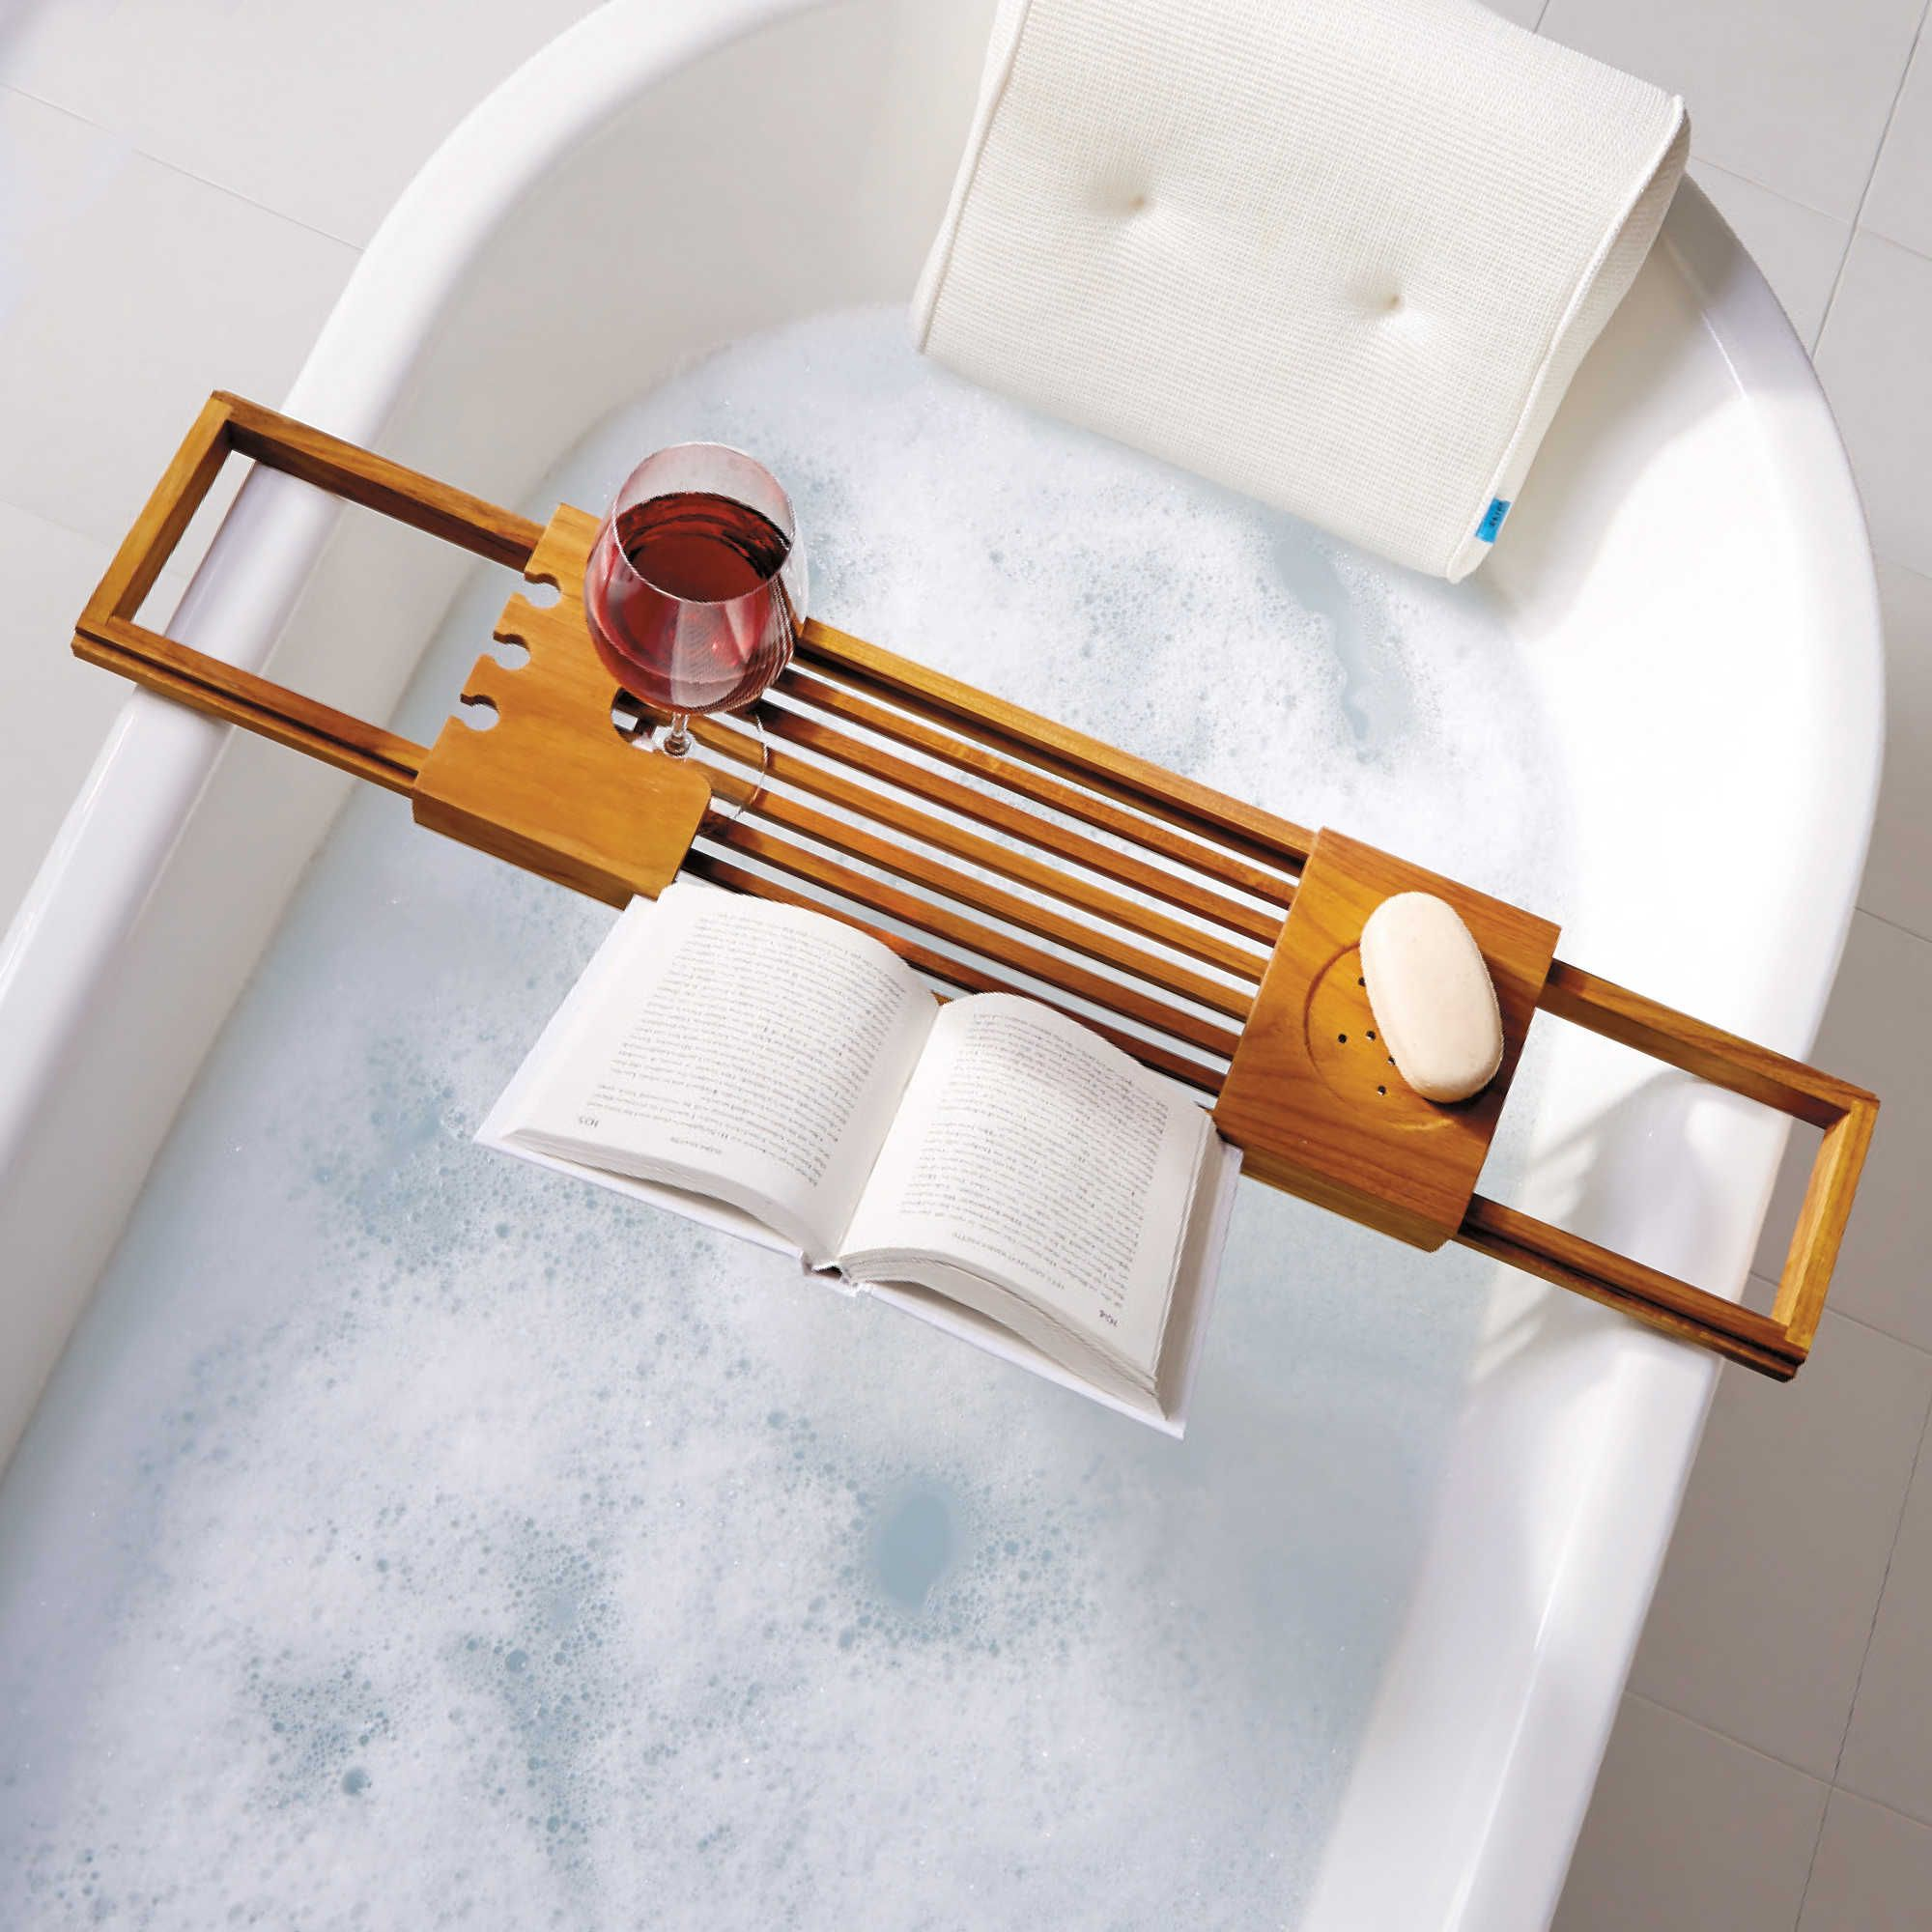 Teak Bathtub Tray Caddy. Saw this at Bed Bath & Beyond. I love baths ...